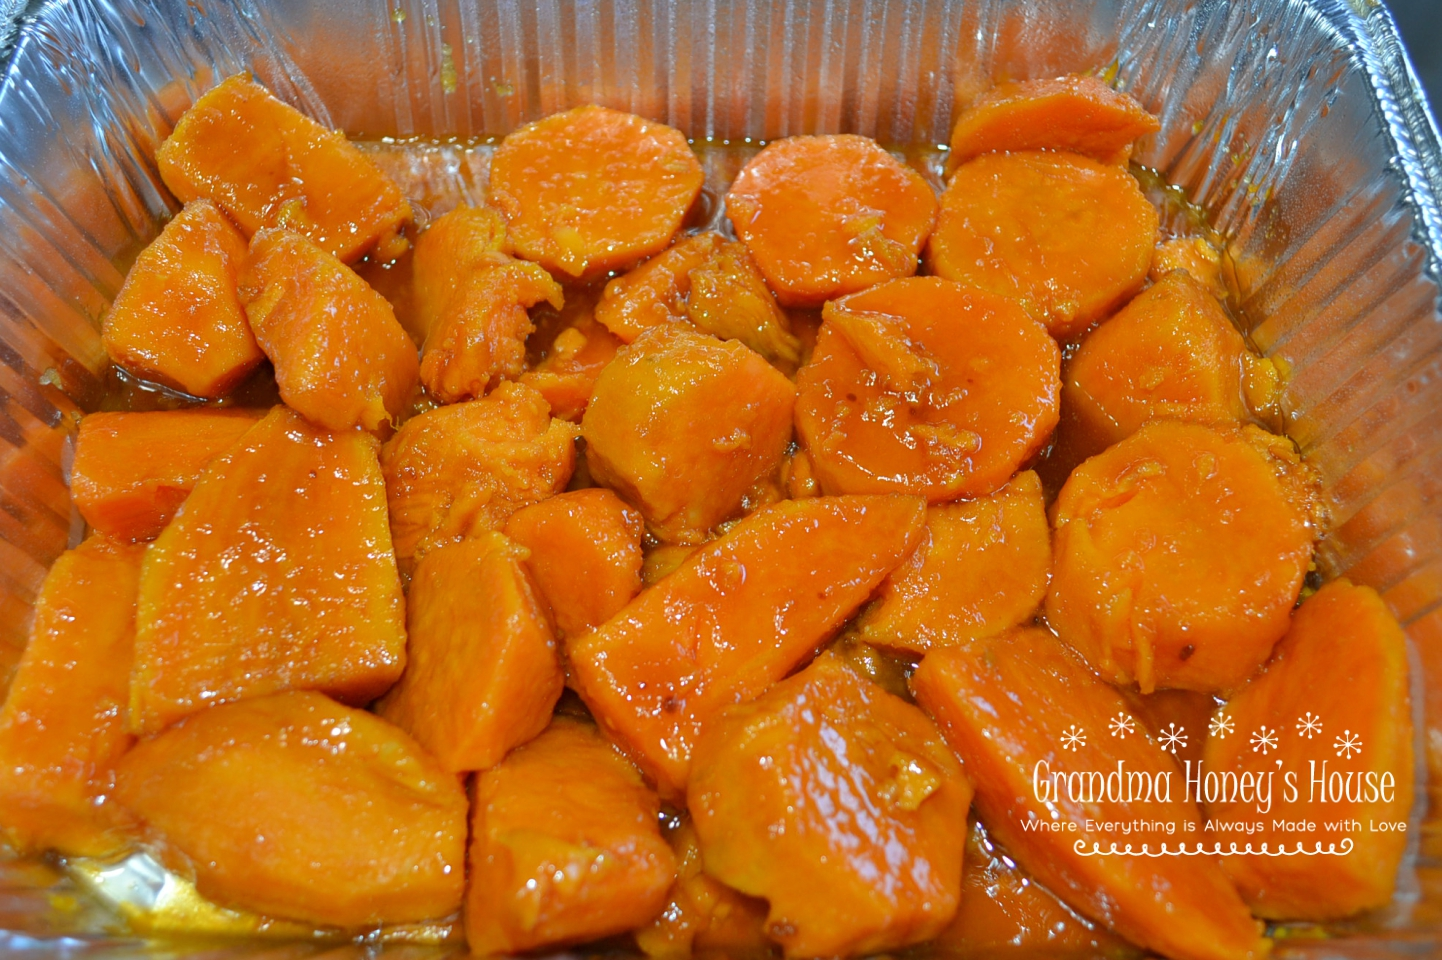 Baked Sweet Potatoes in Brown Sugar Syrup is a traditional holiday side dish.